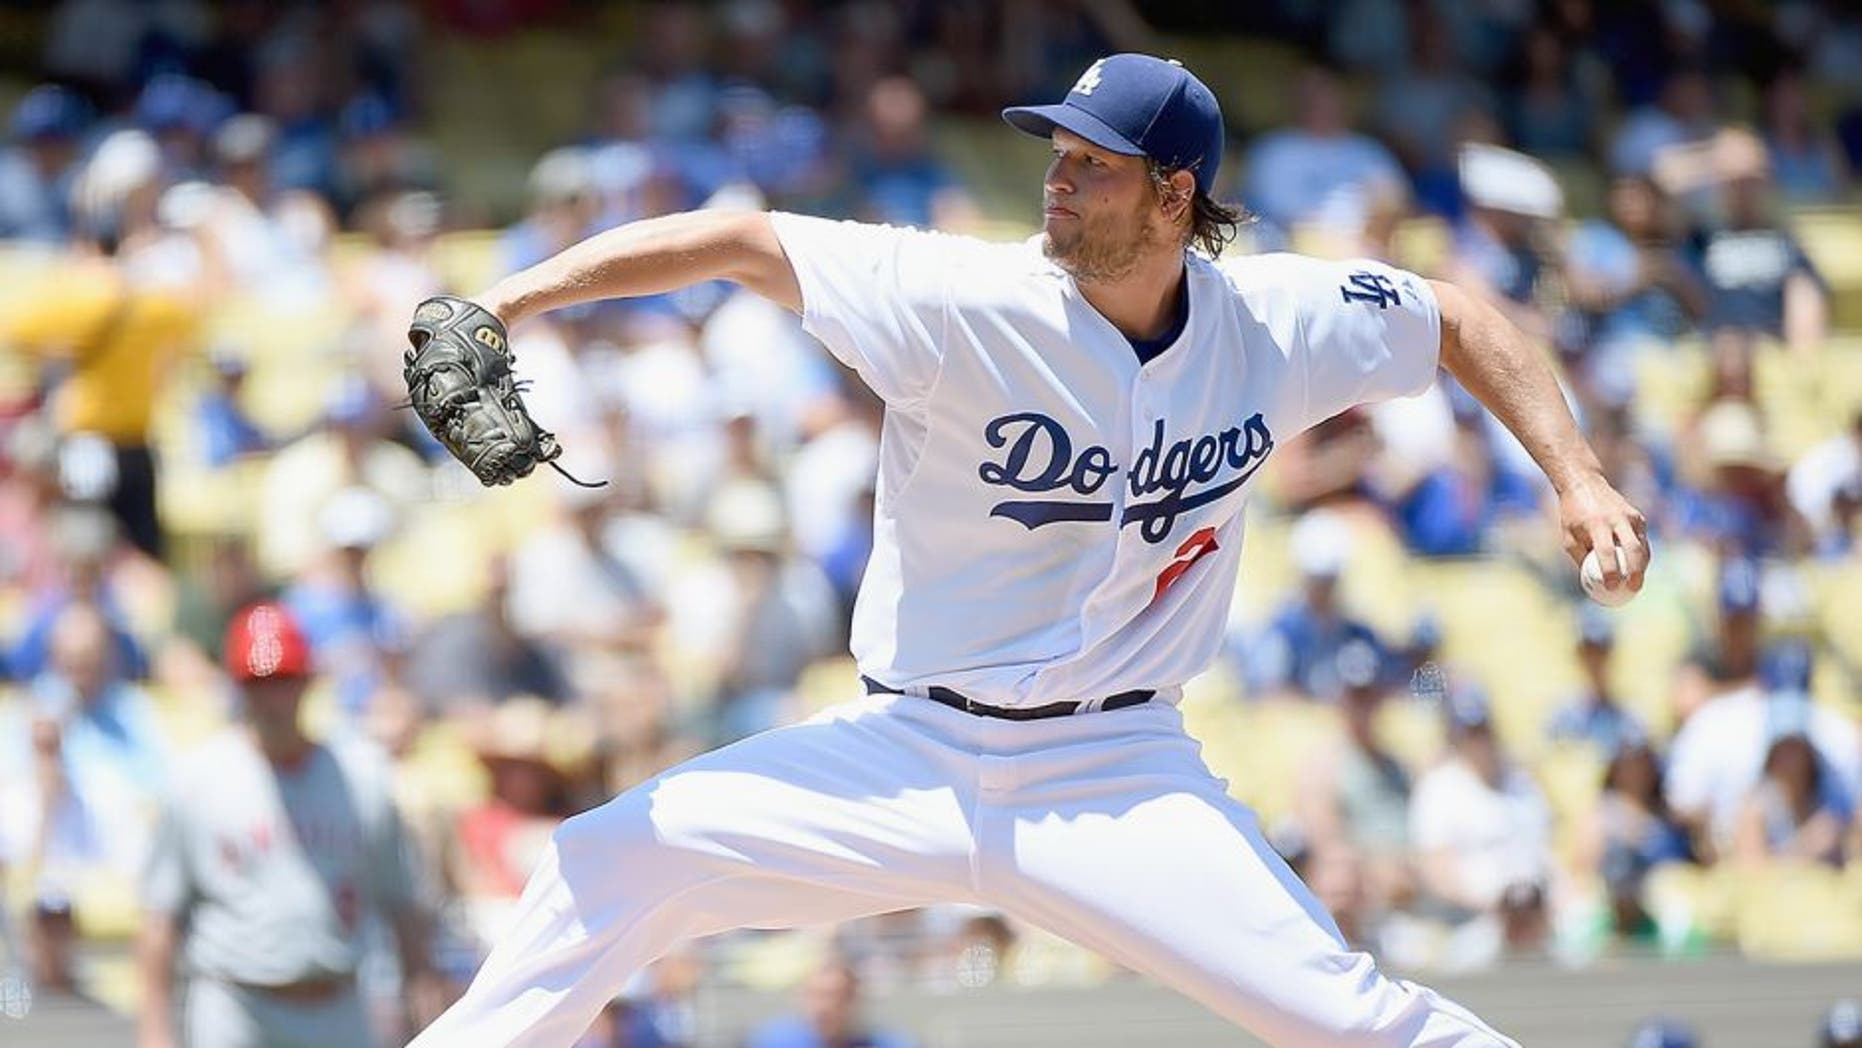 LOS ANGELES, CA - AUGUST 01: Clayton Kershaw #22 of the Los Angeles Dodgers pitches to the Los Angeles Angels during the first inning at Dodger Stadium on August 1, 2015 in Los Angeles, California. (Photo by Harry How/Getty Images)